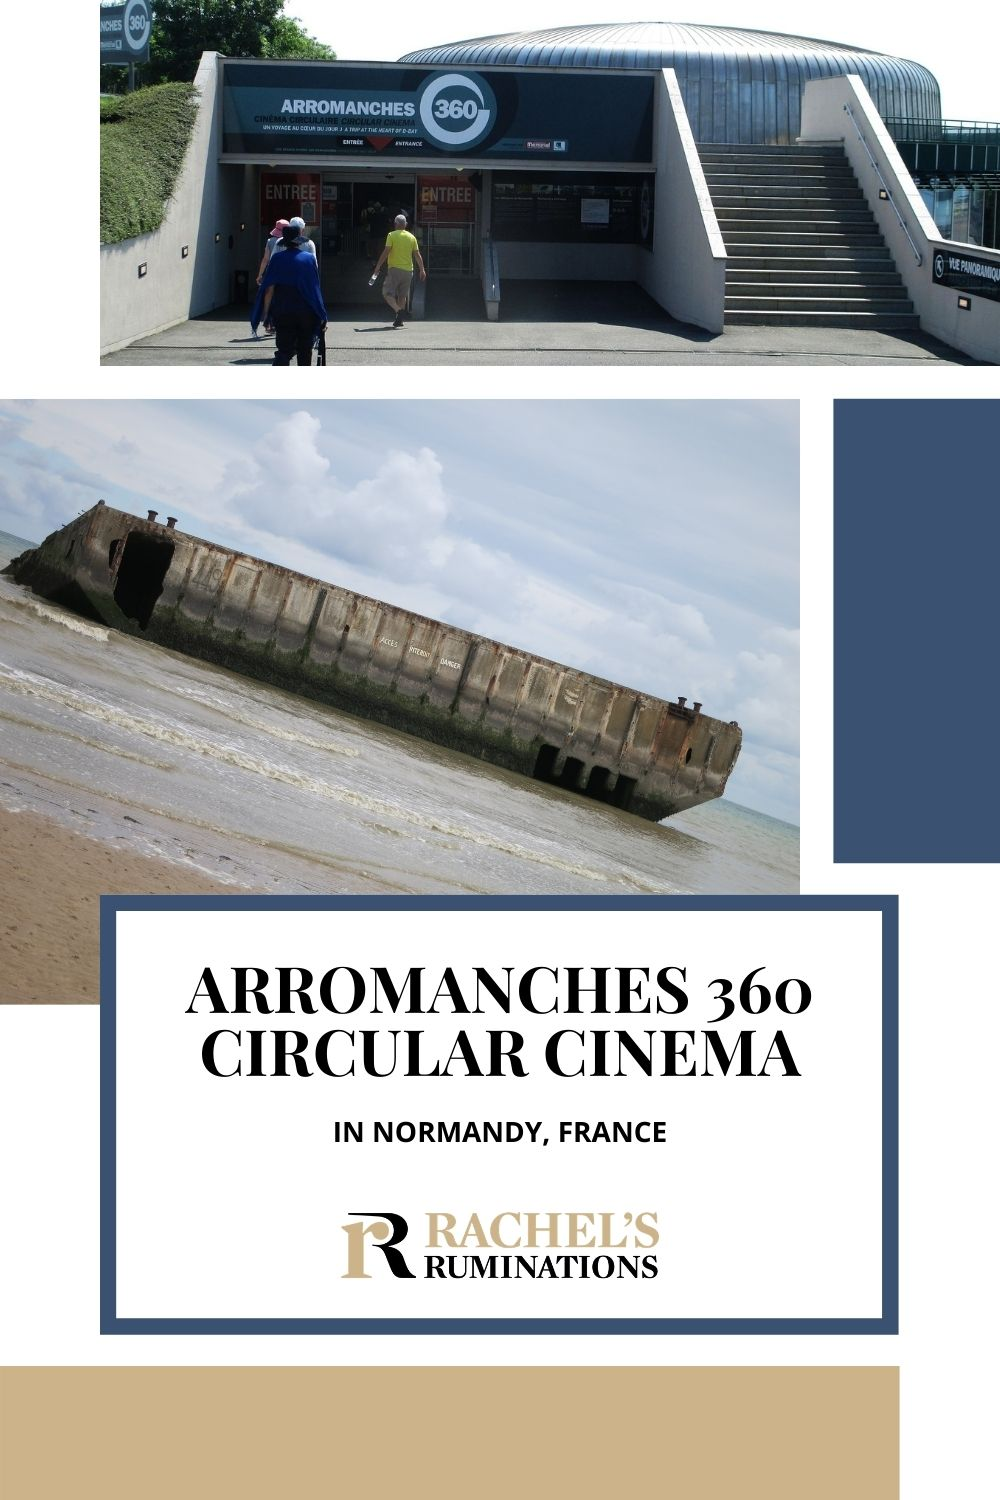 """My oh-so-laconic son, on exiting Arromanches 360 circular cinema, which depicts the D-Day invasion, remarked, """"Even I found this one moving,"""" Read the review here. via @rachelsruminations"""